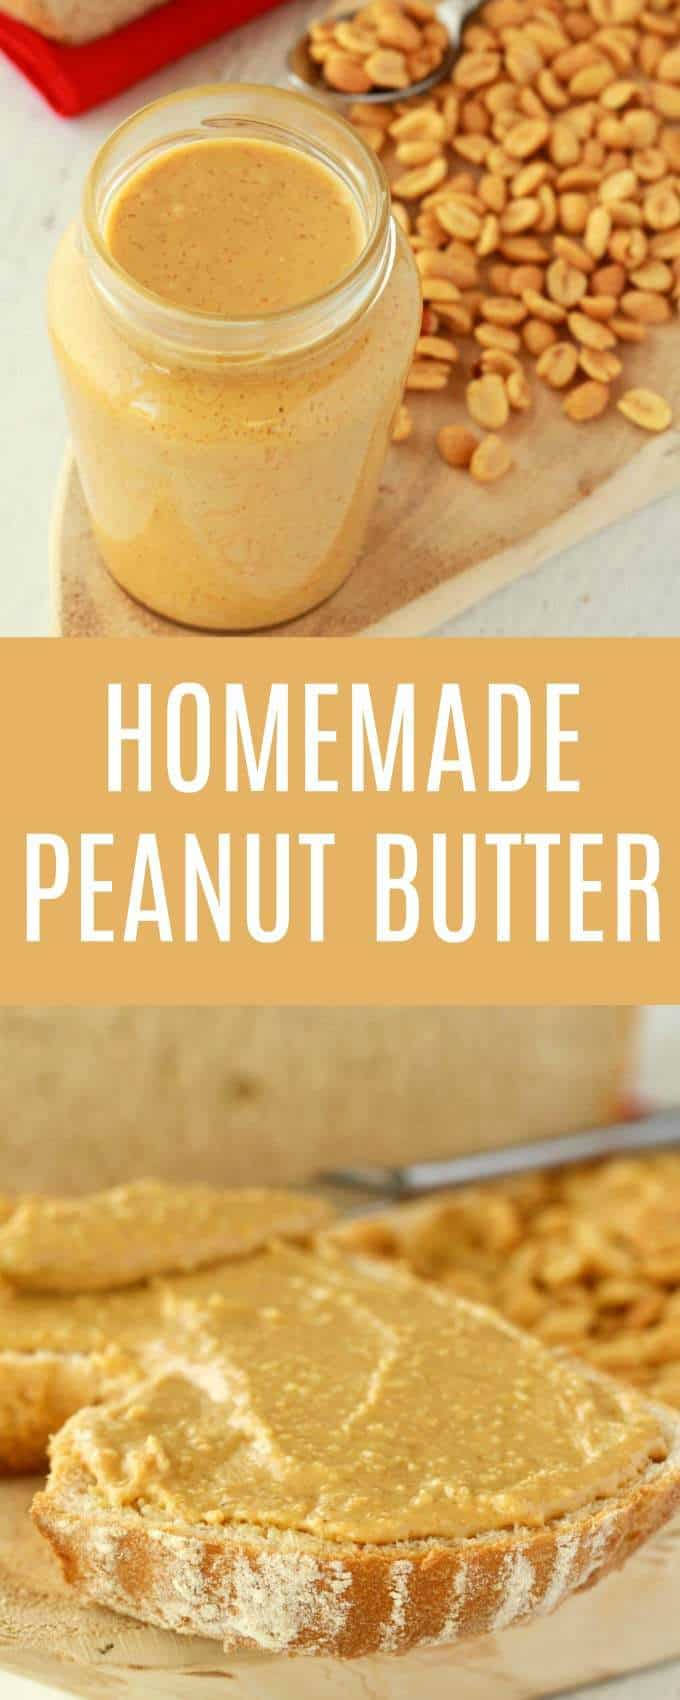 Creamy, wholesome and homemade peanut butter. Perfectly spreadable, spoonable and deliciously salty with a hint of sweet. Super easy and fun to make! #vegan #lovingitvegan #homemade #peanutbutter #glutenfree #dairyfree #nutbutter | lovingitvegan.com